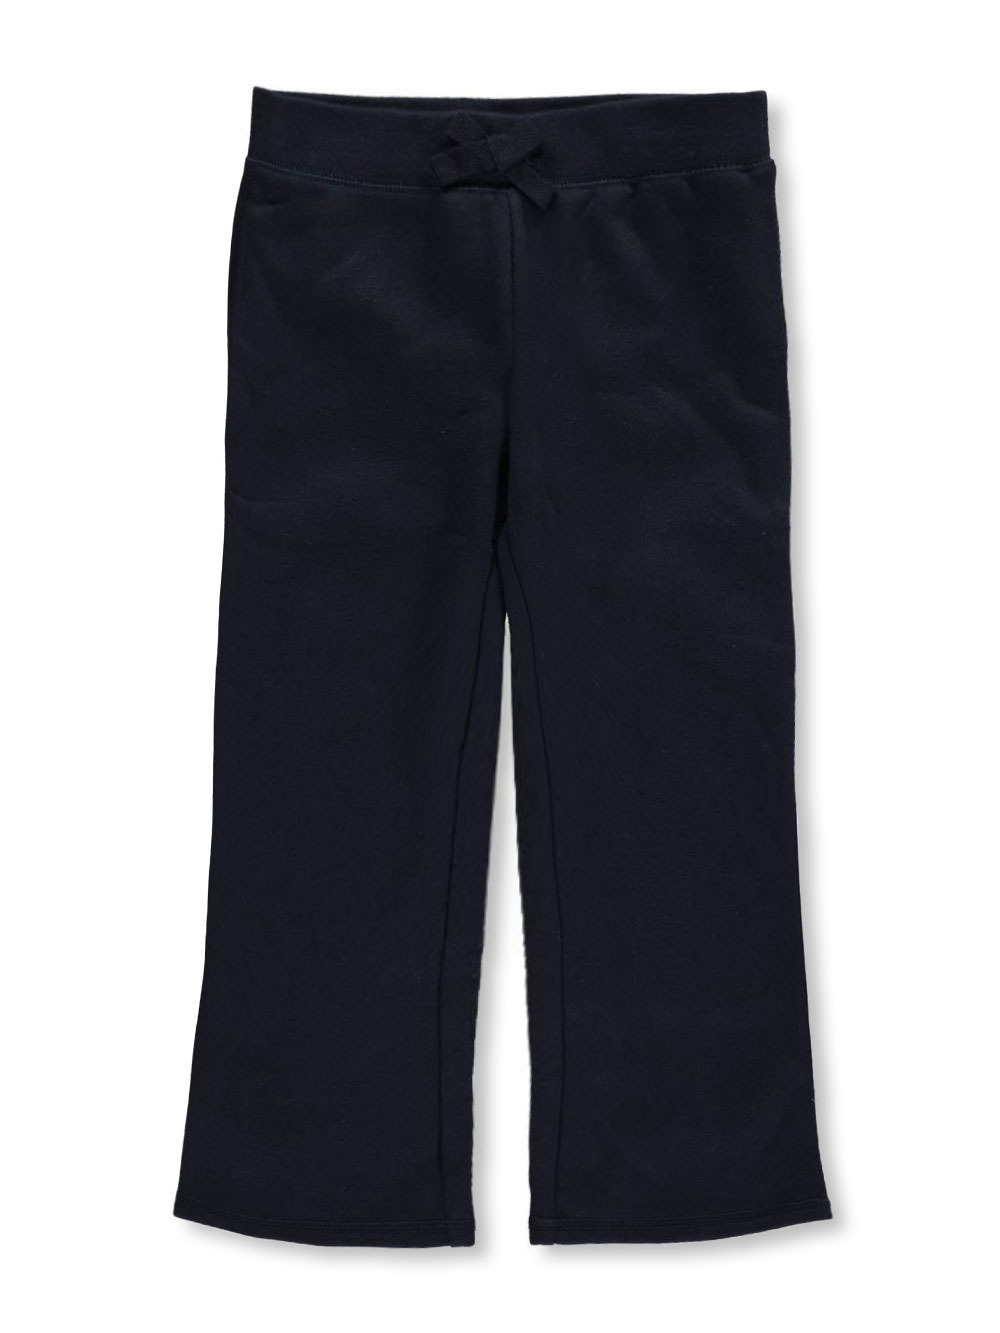 French Toast School Uniform Little Girls' Straight Leg Fleece Sweatpants (Sizes 4 - 6X) - navy, 4